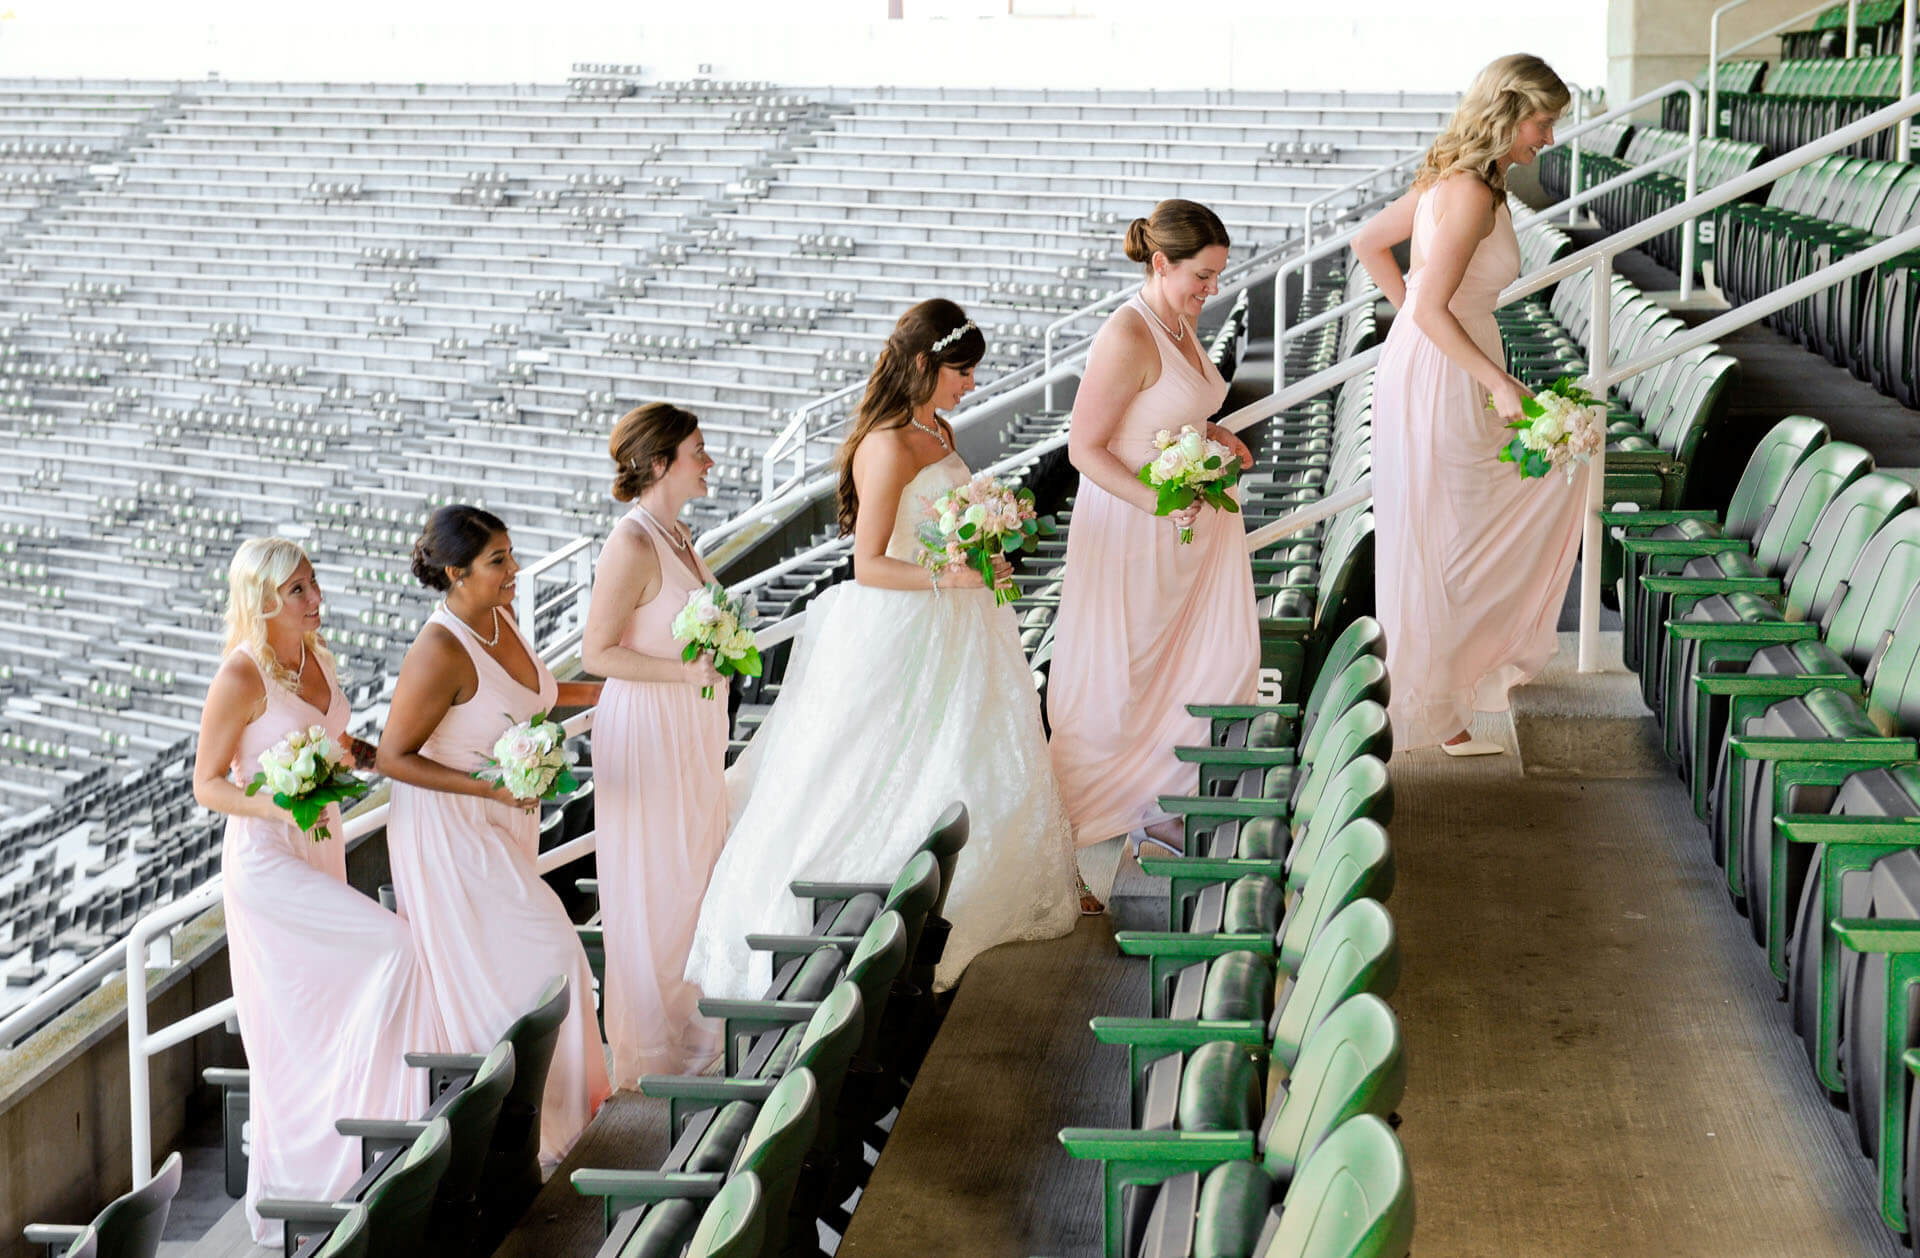 Epic Wedding portrait showing the bride and her bridesmaids heading back out of MSU's stadium during their wedding in East Lansing, Michigan.